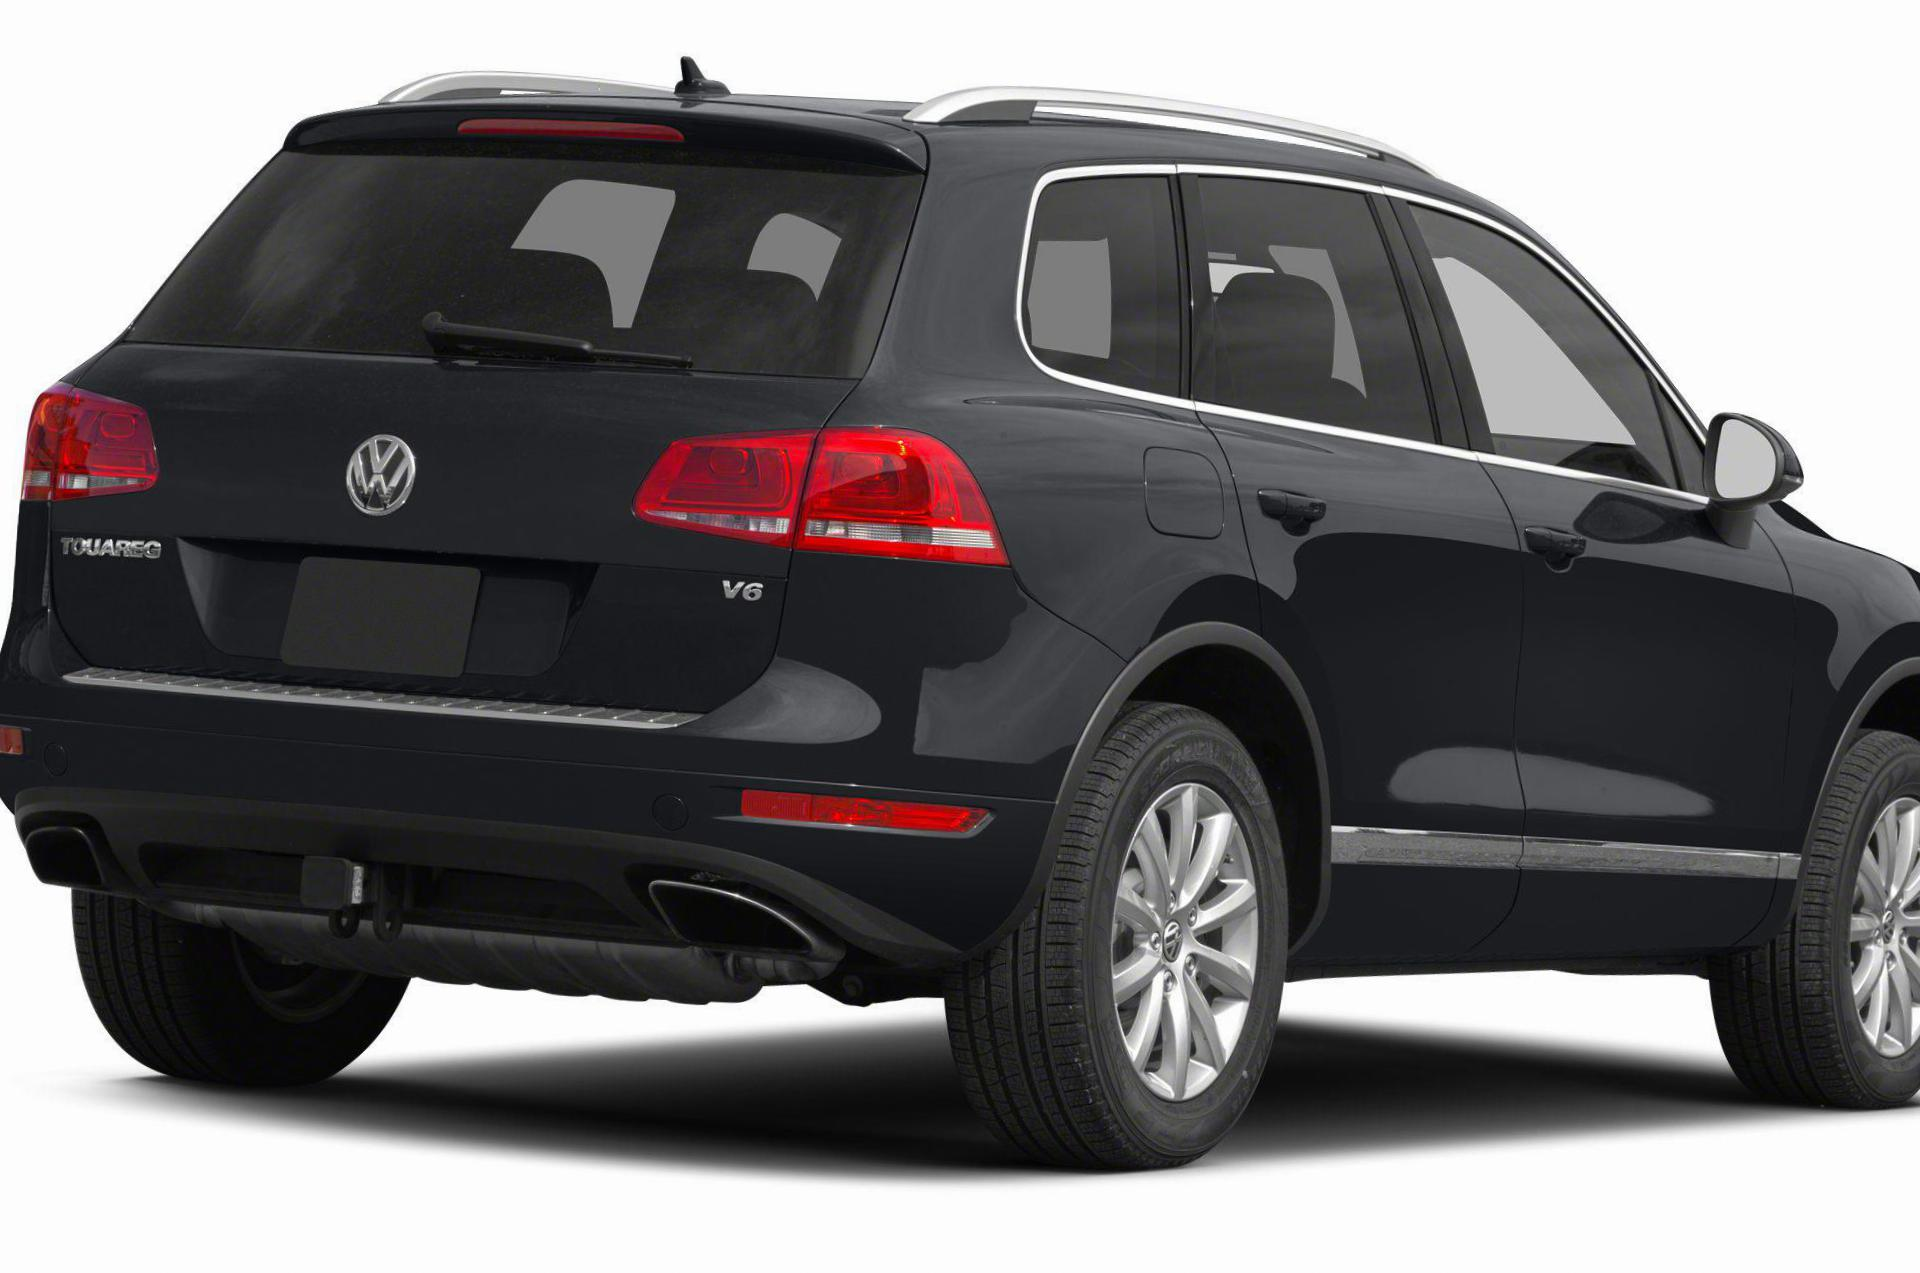 Volkswagen Touareg for sale hatchback